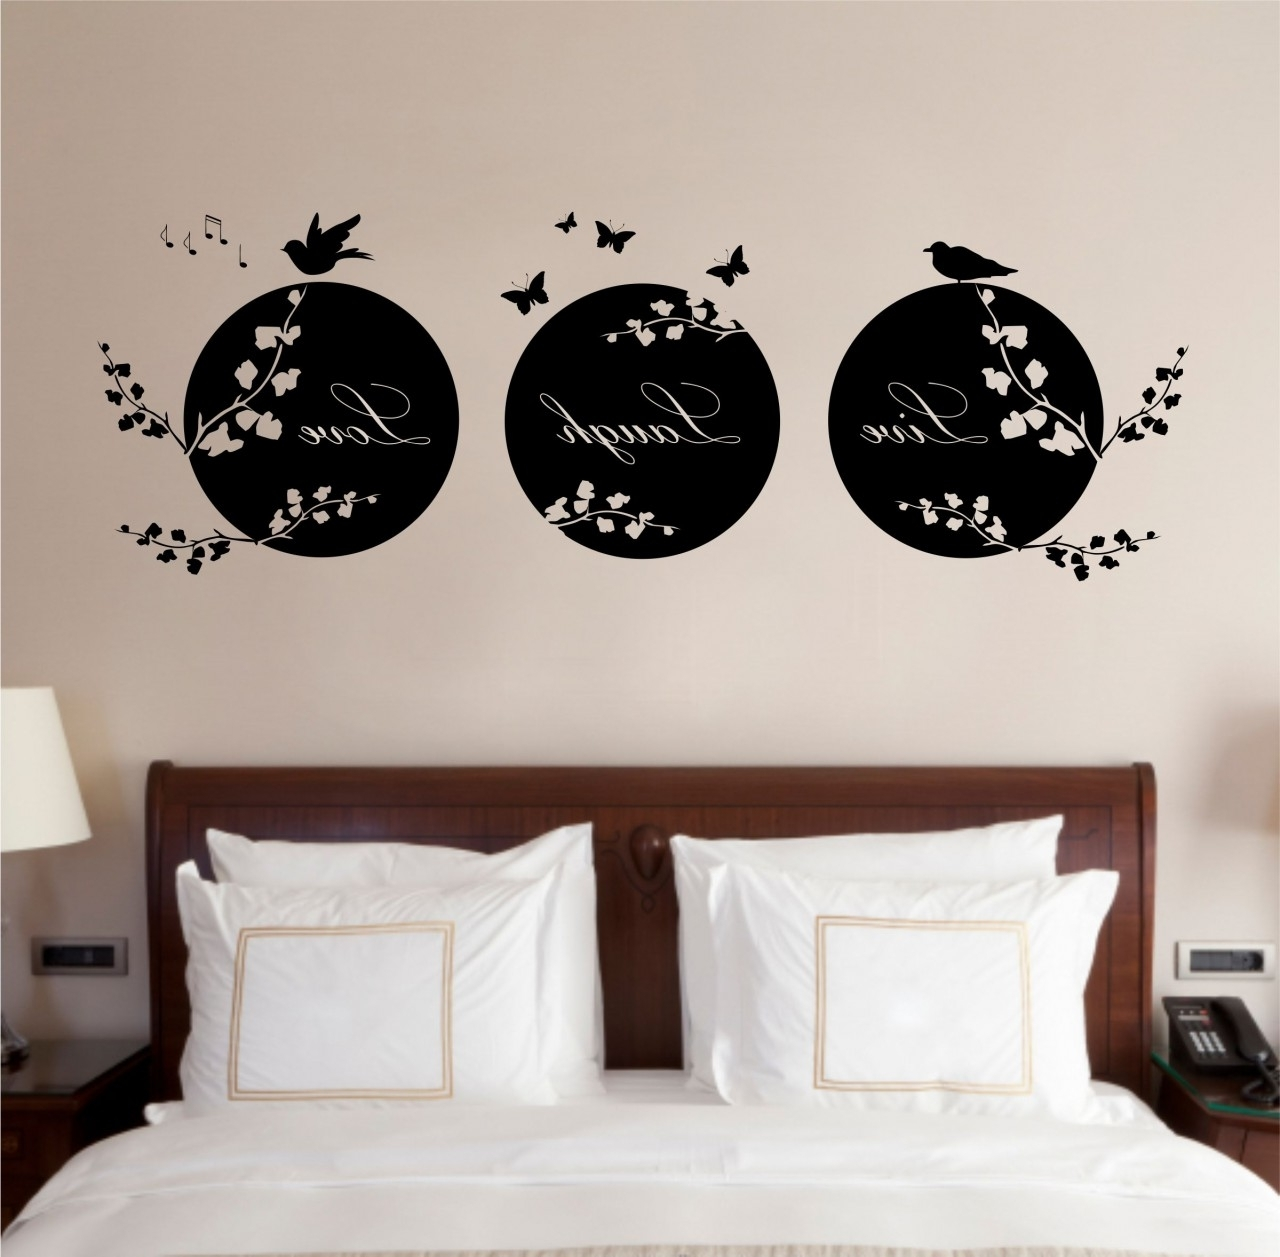 Best And Newest Vinyl Wall Art Intended For Vinyl Wall Art: Makeover For Your Homes – Pickndecor (View 1 of 15)